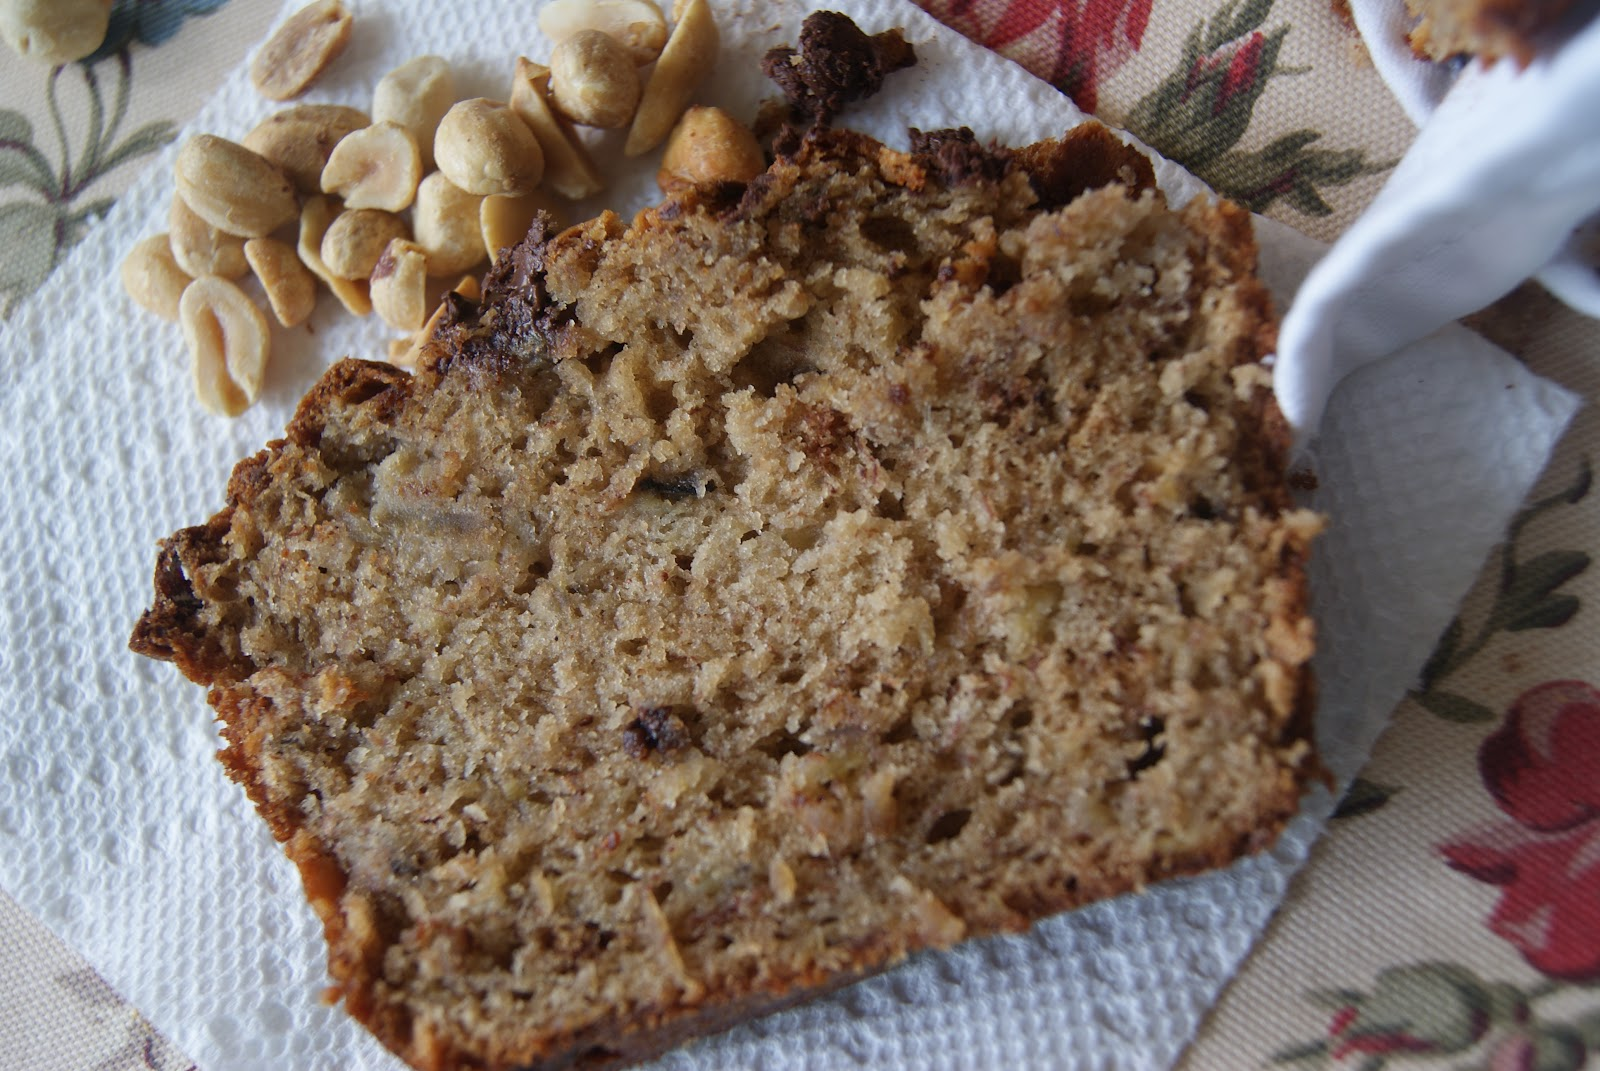 Recipes from a Girl: Peanut Butter Banana Bread